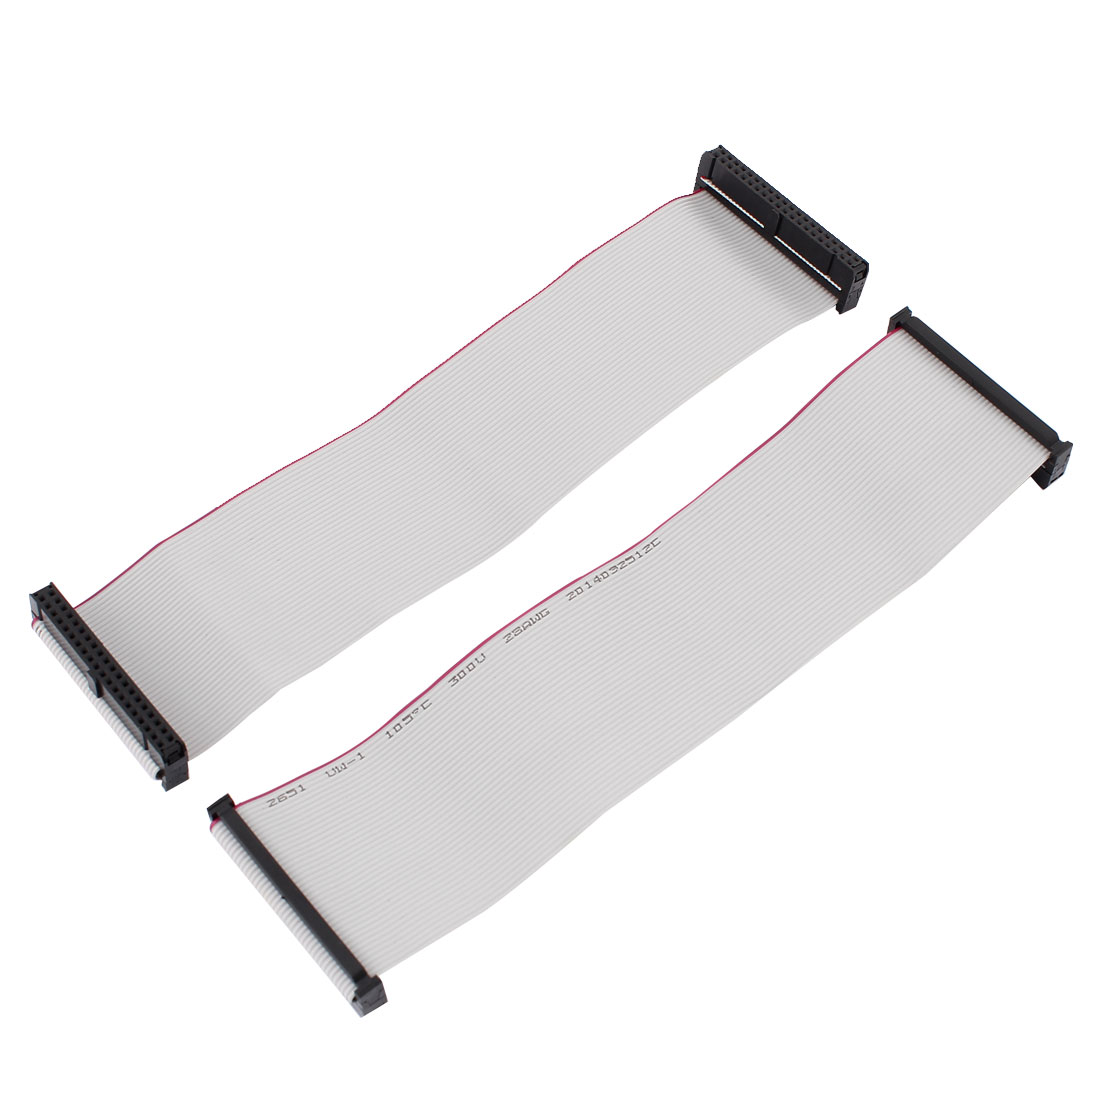 2pcs 2.54mm 40-Pin Female to Female IDE PATA Extension Flat Ribbon Cable 20cm